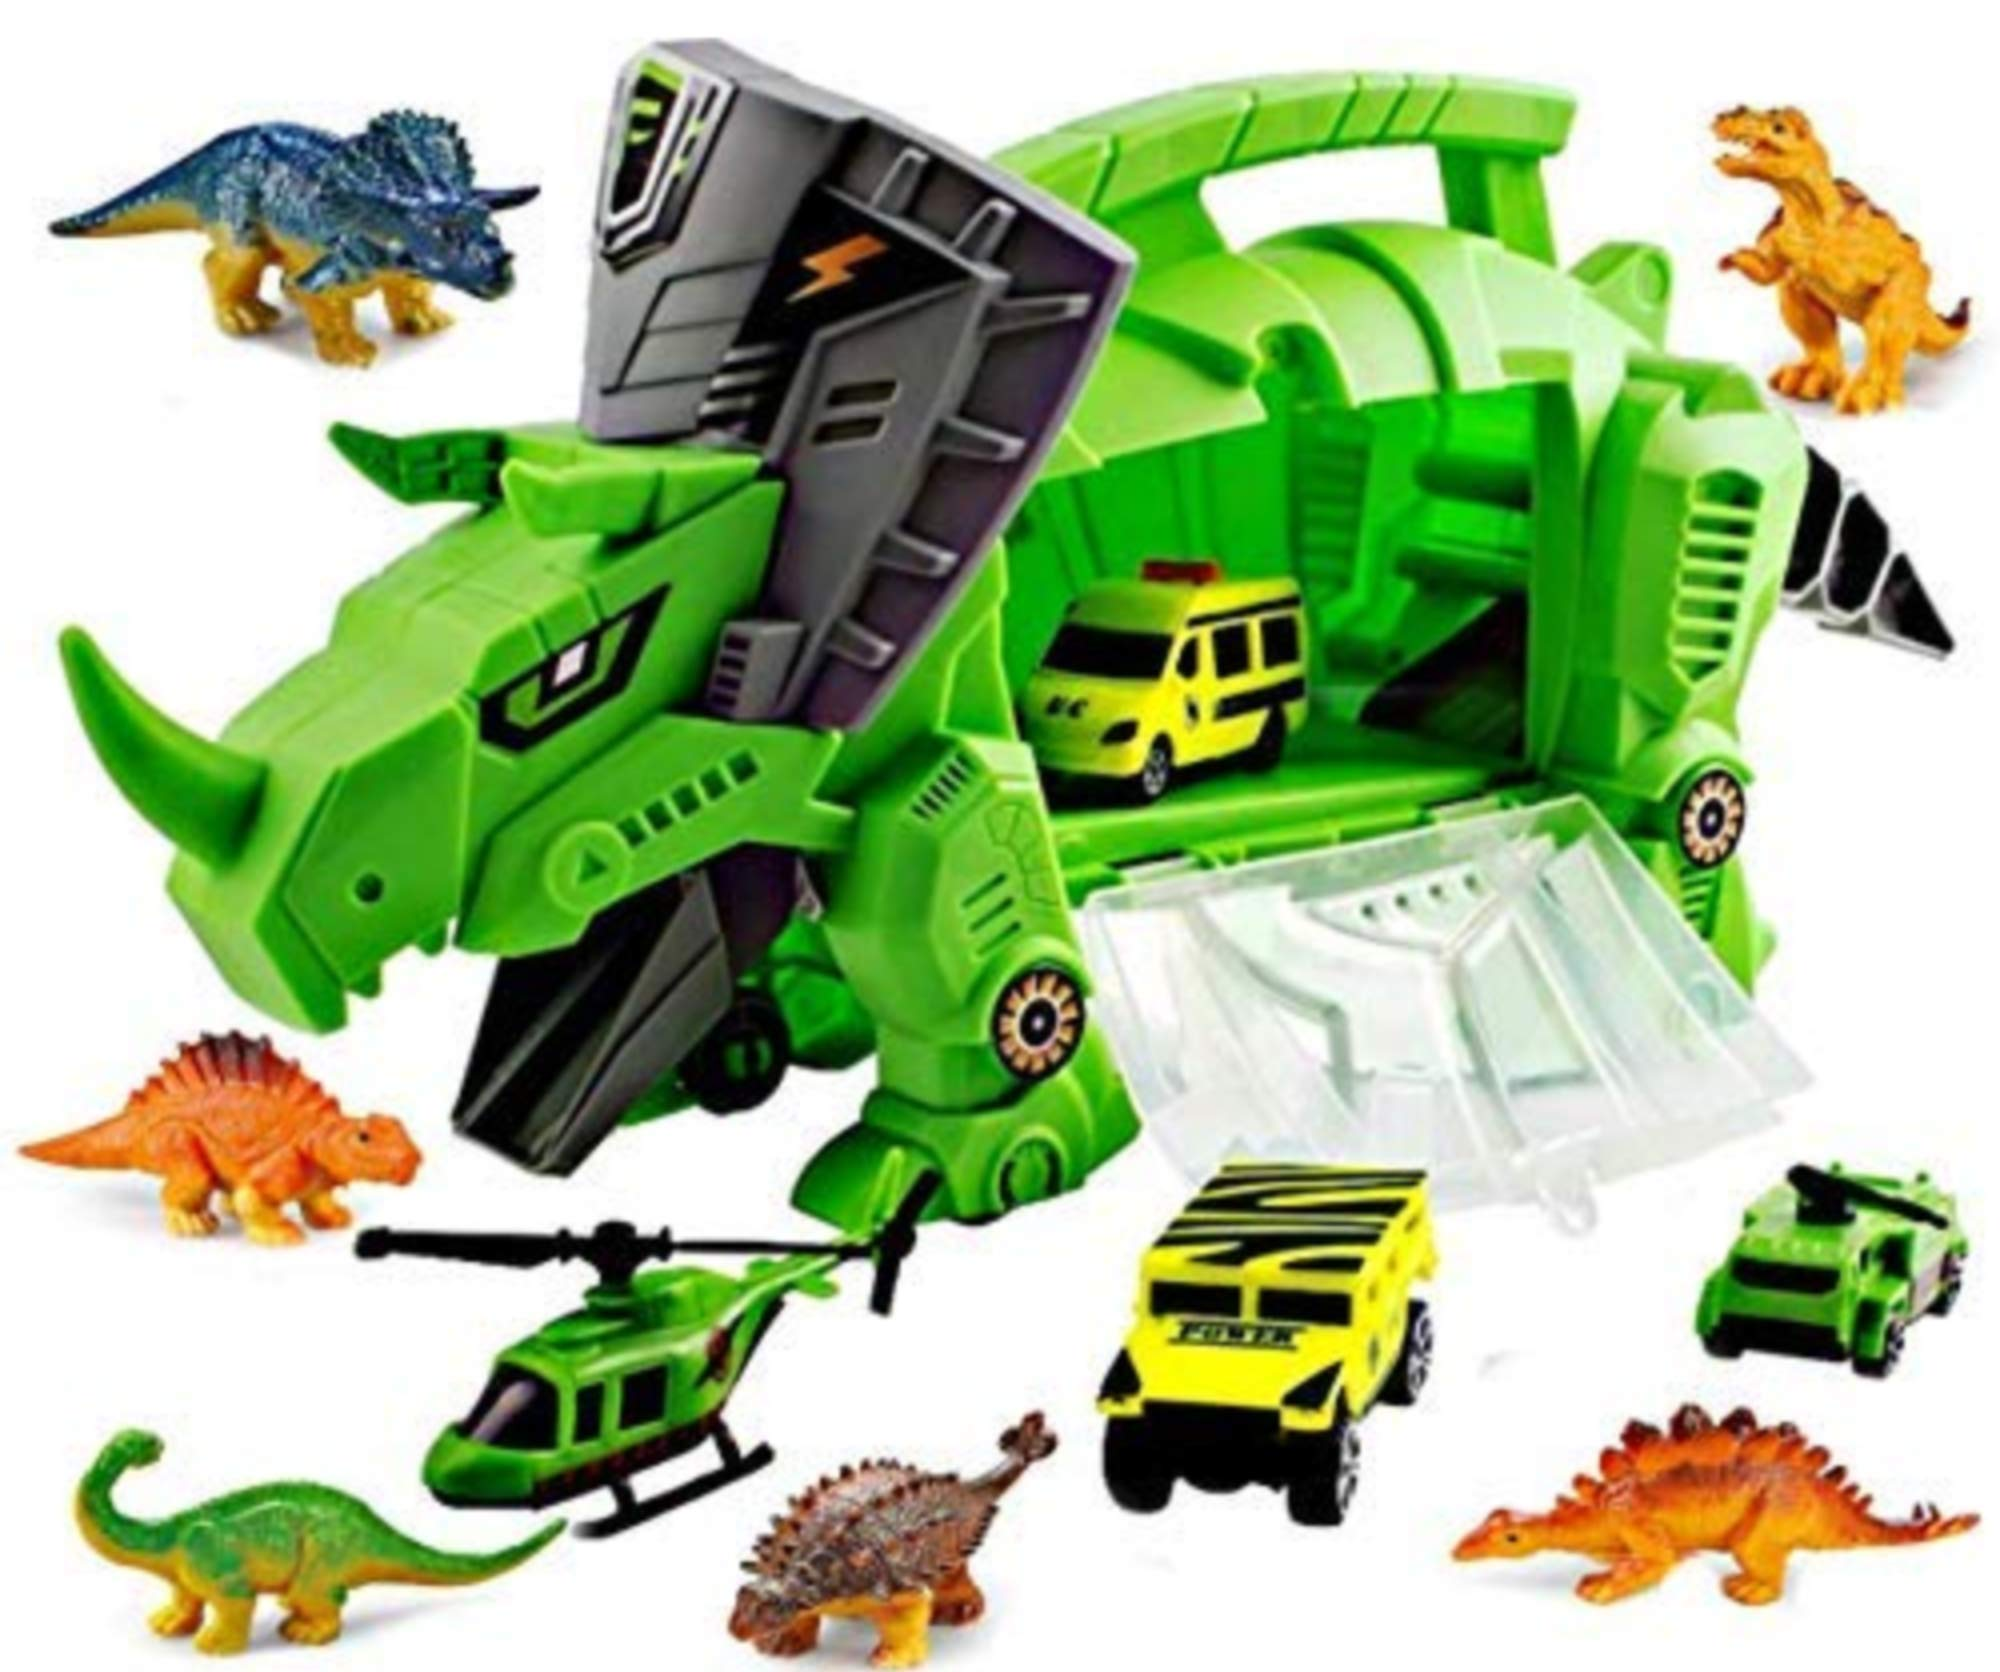 Think N Thrill Dinosaur Toys Storage Carrier for Kids Includes 6 Mini Dinosaurs 3 Toy Cars & Helicopter - #1 Best Fun Playset for Boys & Girls - Great for Children Ages 3+ Years Old (New)